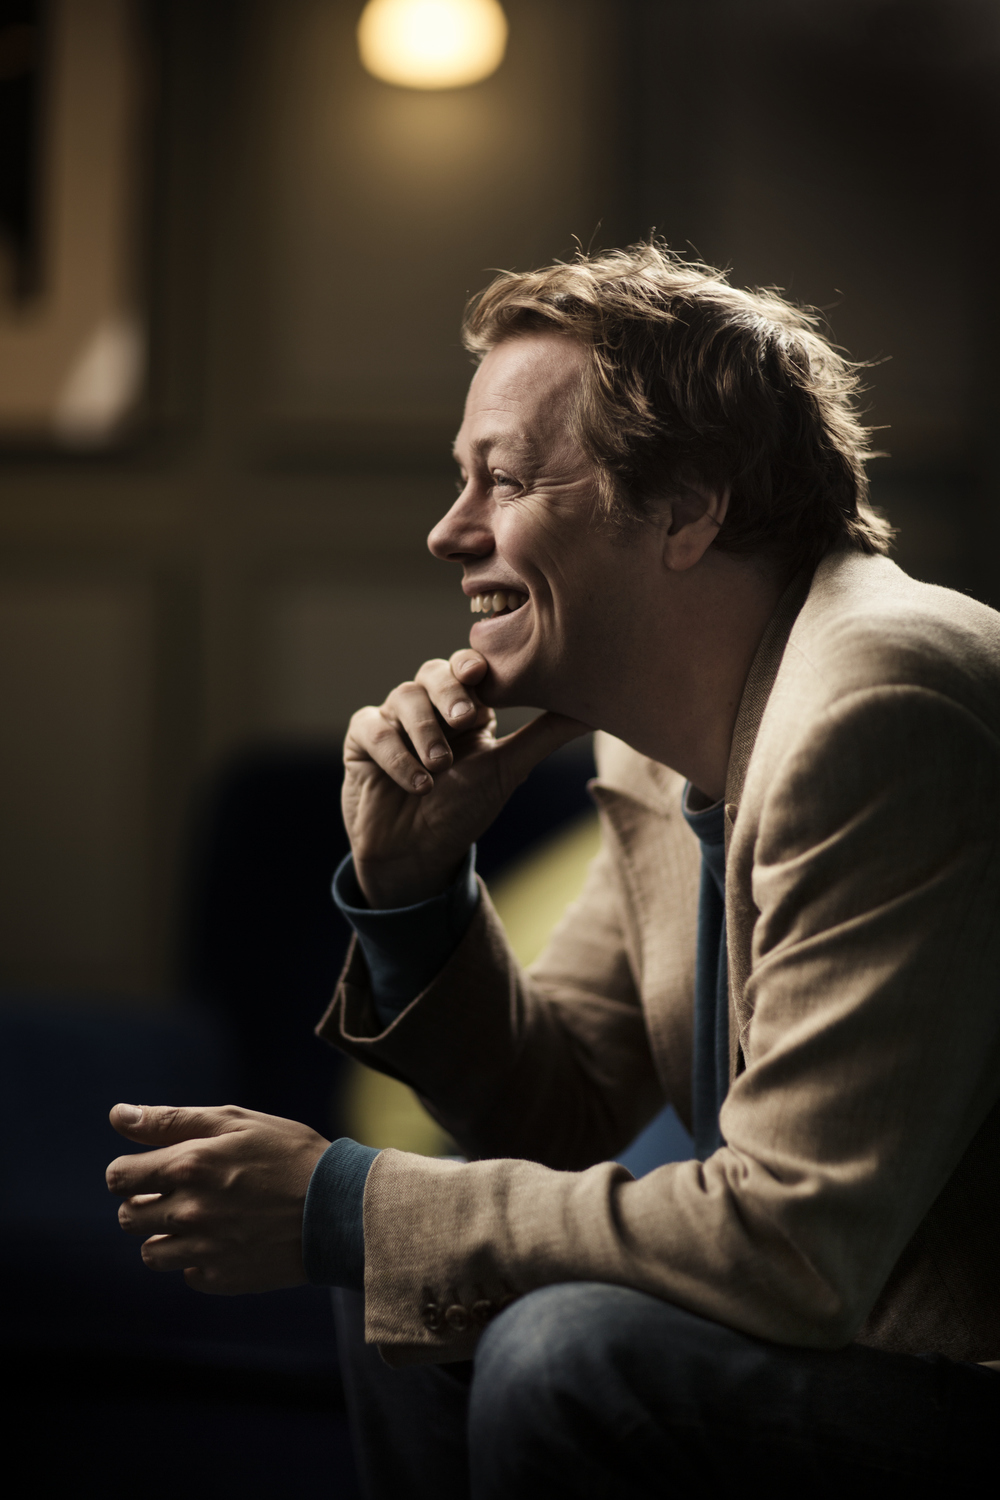 Tom Parker Bowles profile piece for T2, shot at the Groucho Club Soho he has a new cook book coming out.